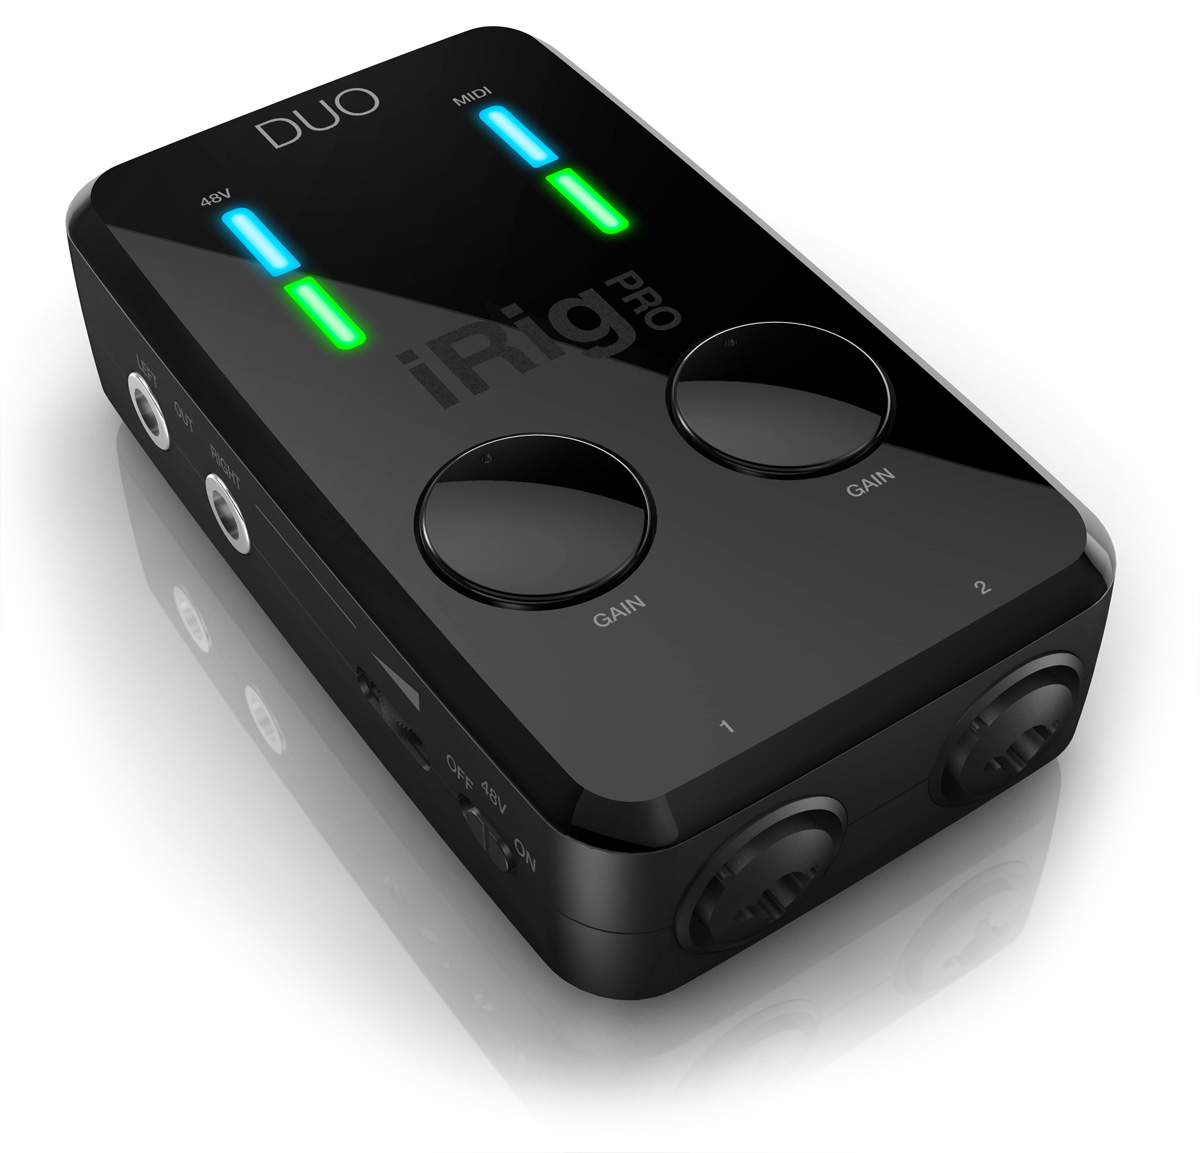 kvr irig pro duo by ik multimedia audio interface. Black Bedroom Furniture Sets. Home Design Ideas